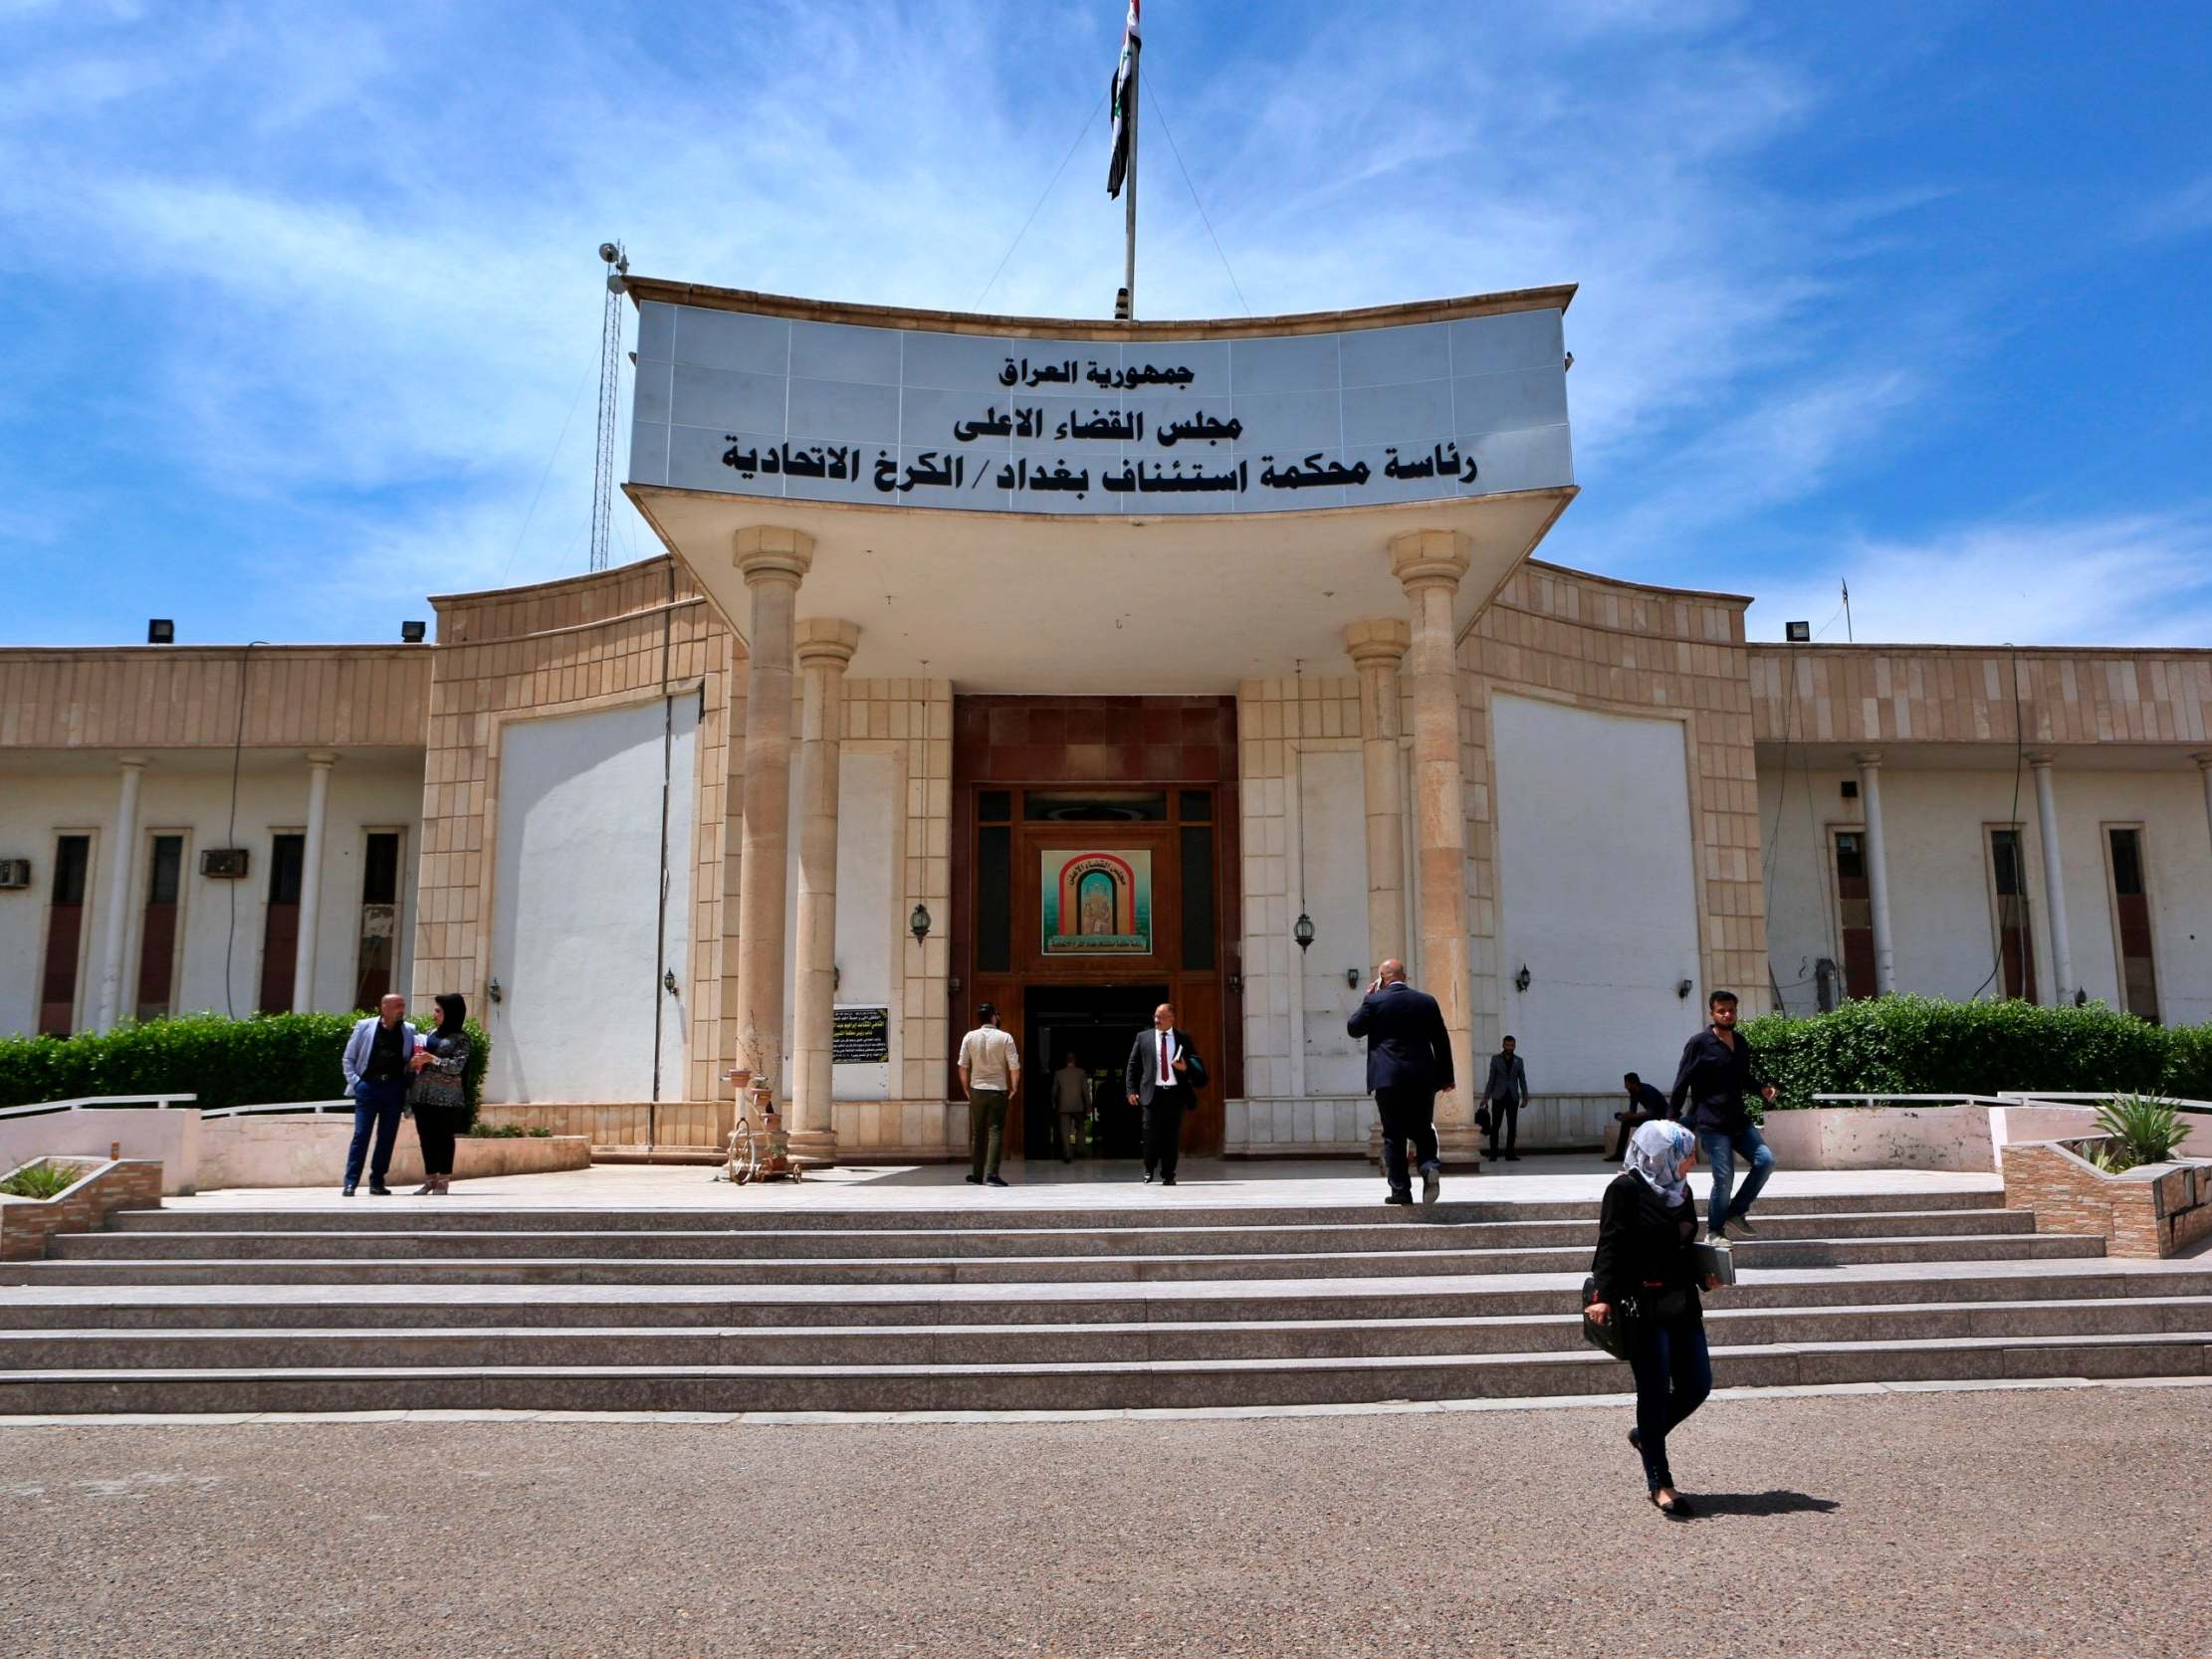 Baghdad - latest news, breaking stories and comment - The